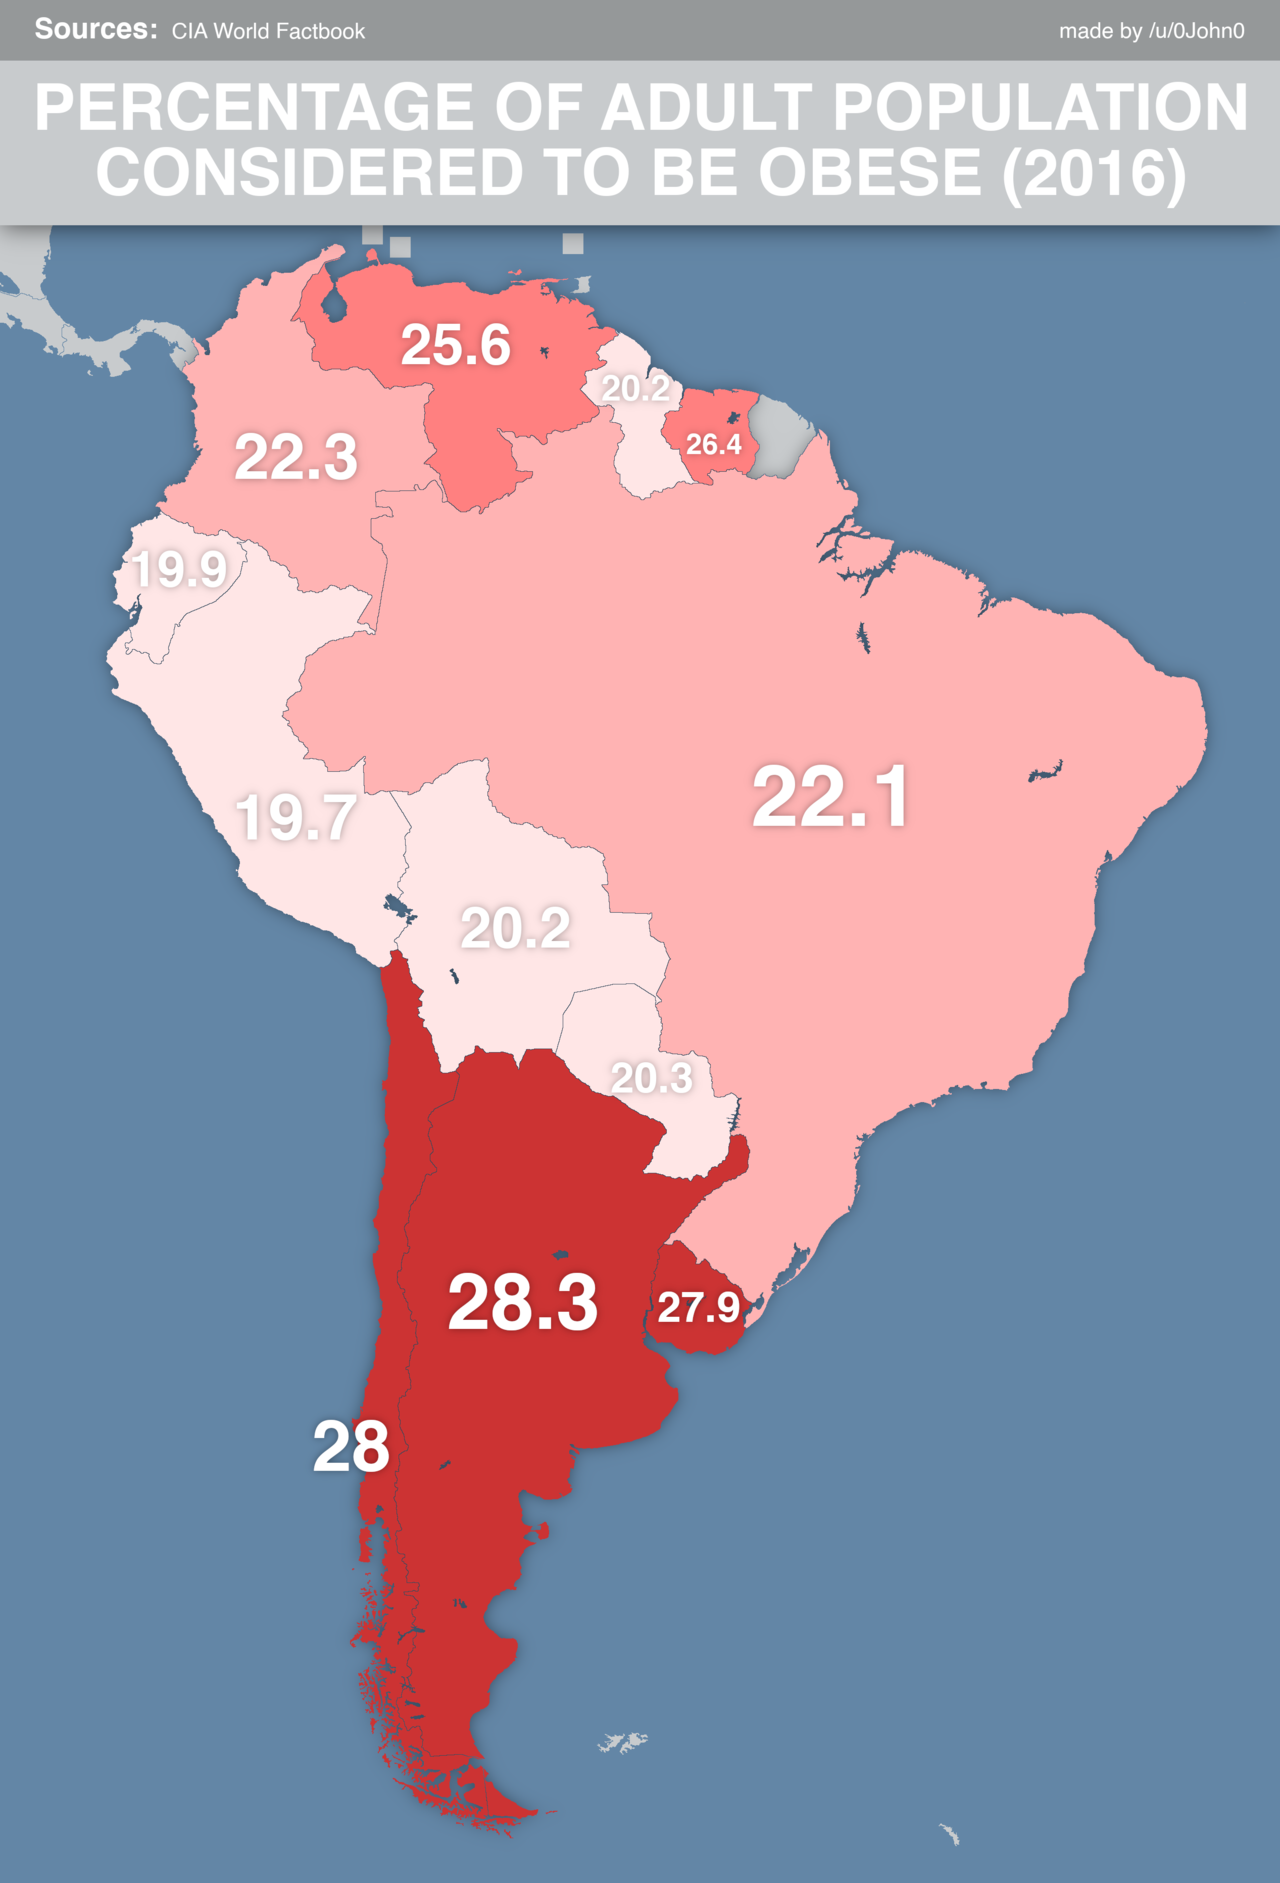 amerique du sud-Percentage of adult population considered to be obese in South America